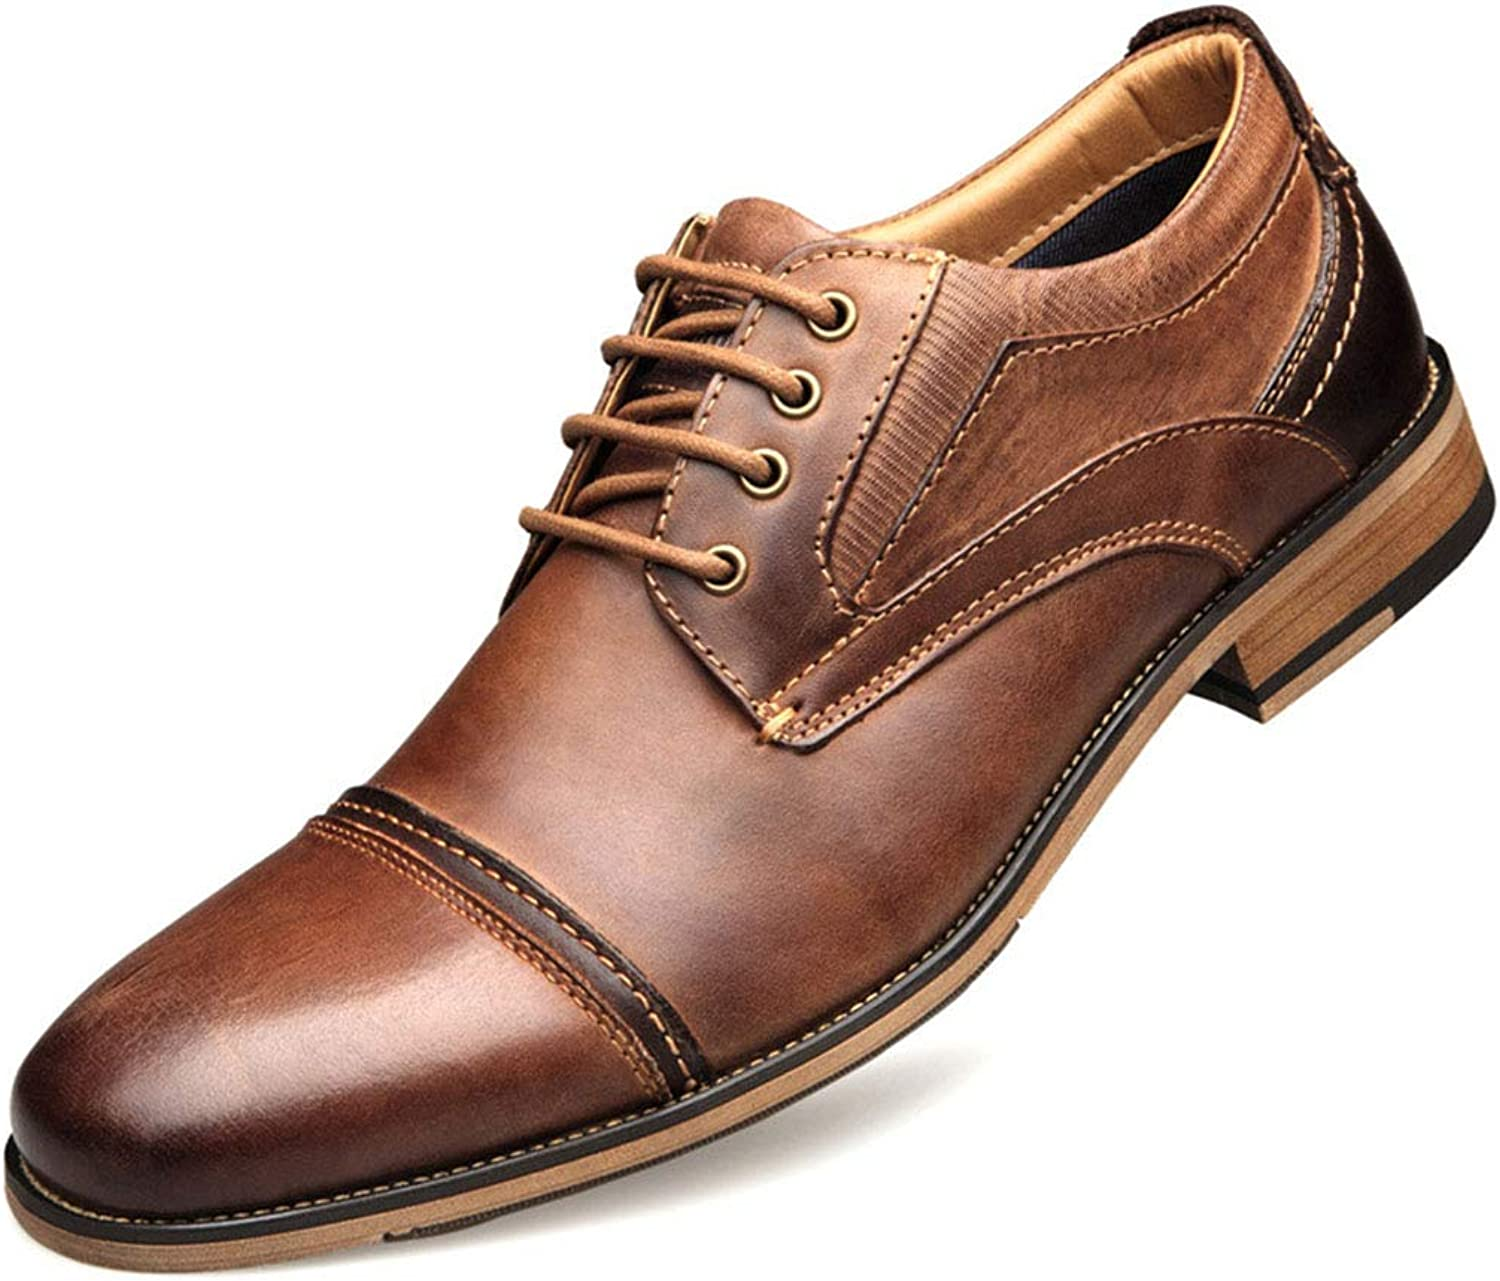 Men's Business Derby Leather shoes Formal Dress Lace ups shoes Work Casual Low heel Footwear For Men